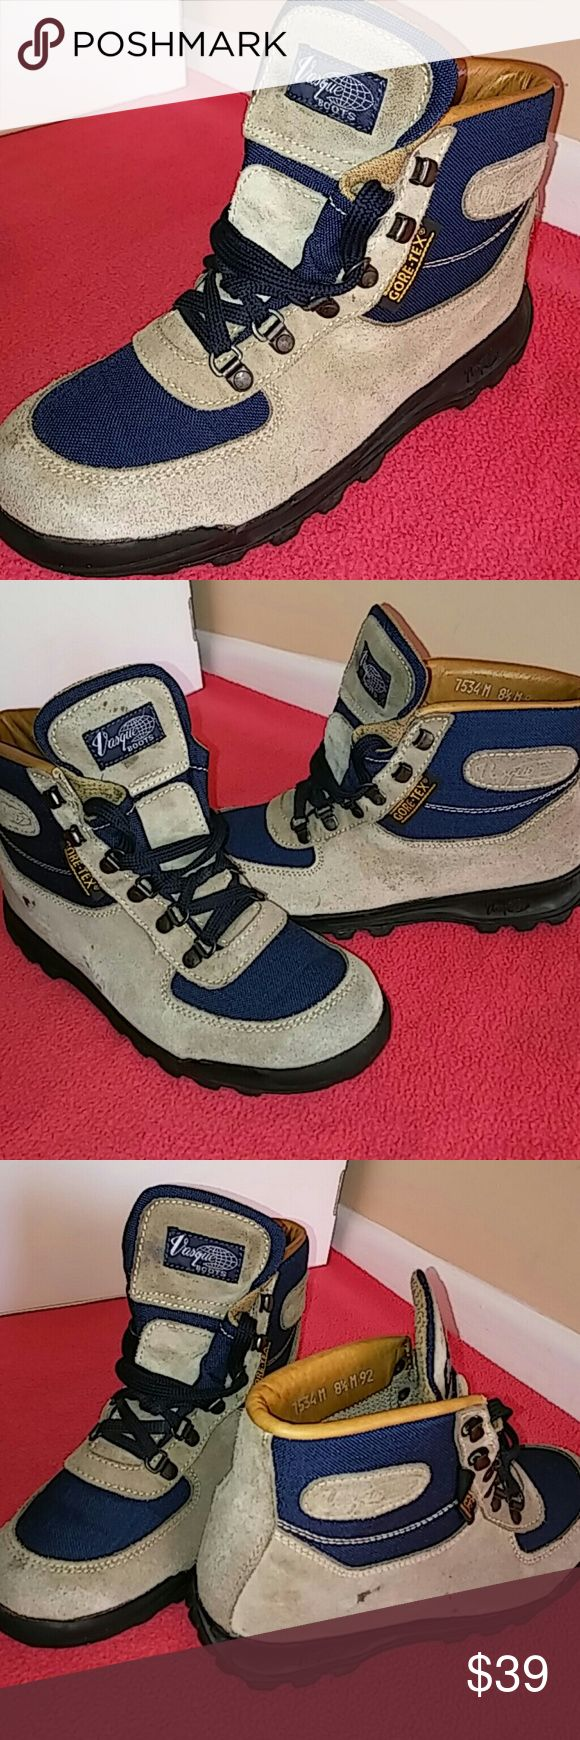 Gore-Tex Vasque Boot..SZ 8.5 MEN &10 &10.5 WOMEN Shoes shows signs of use but in fabulous shape and condition. Worn at least between 10-15 times and rated 7.9/10... Needs just light cleaning. Leather and soles in excellent shape. Soles looks perfectly like new and uppers in awesome shape...just little tiny scuffs. Vasque Shoes Boots